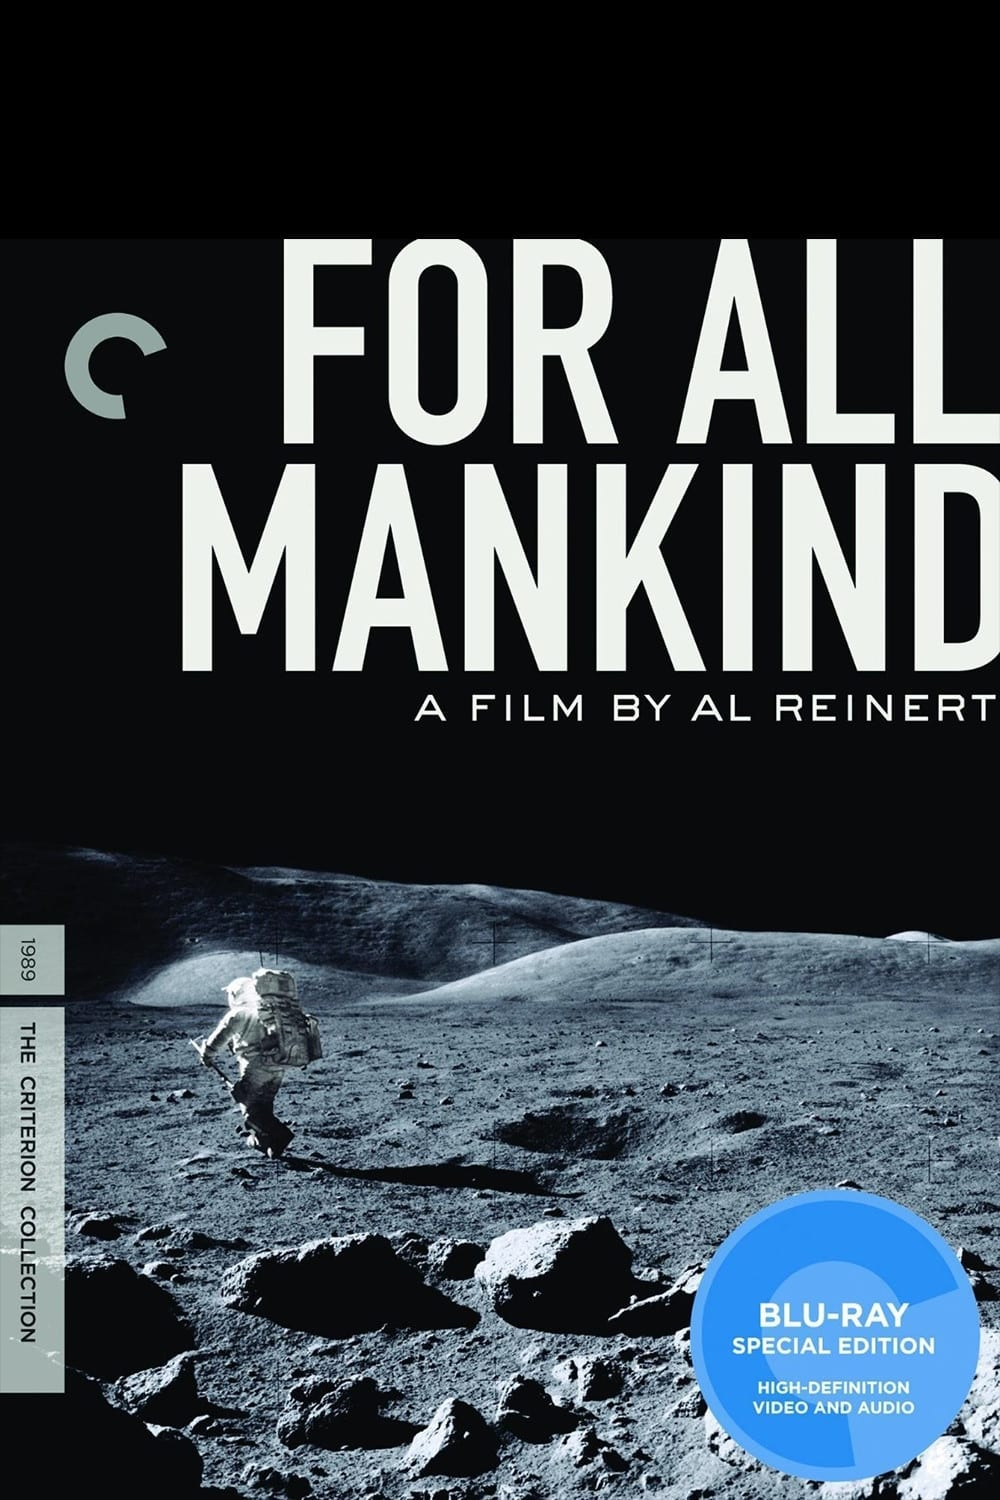 An Accidental Gift: The Making of 'For All Mankind' (2009)